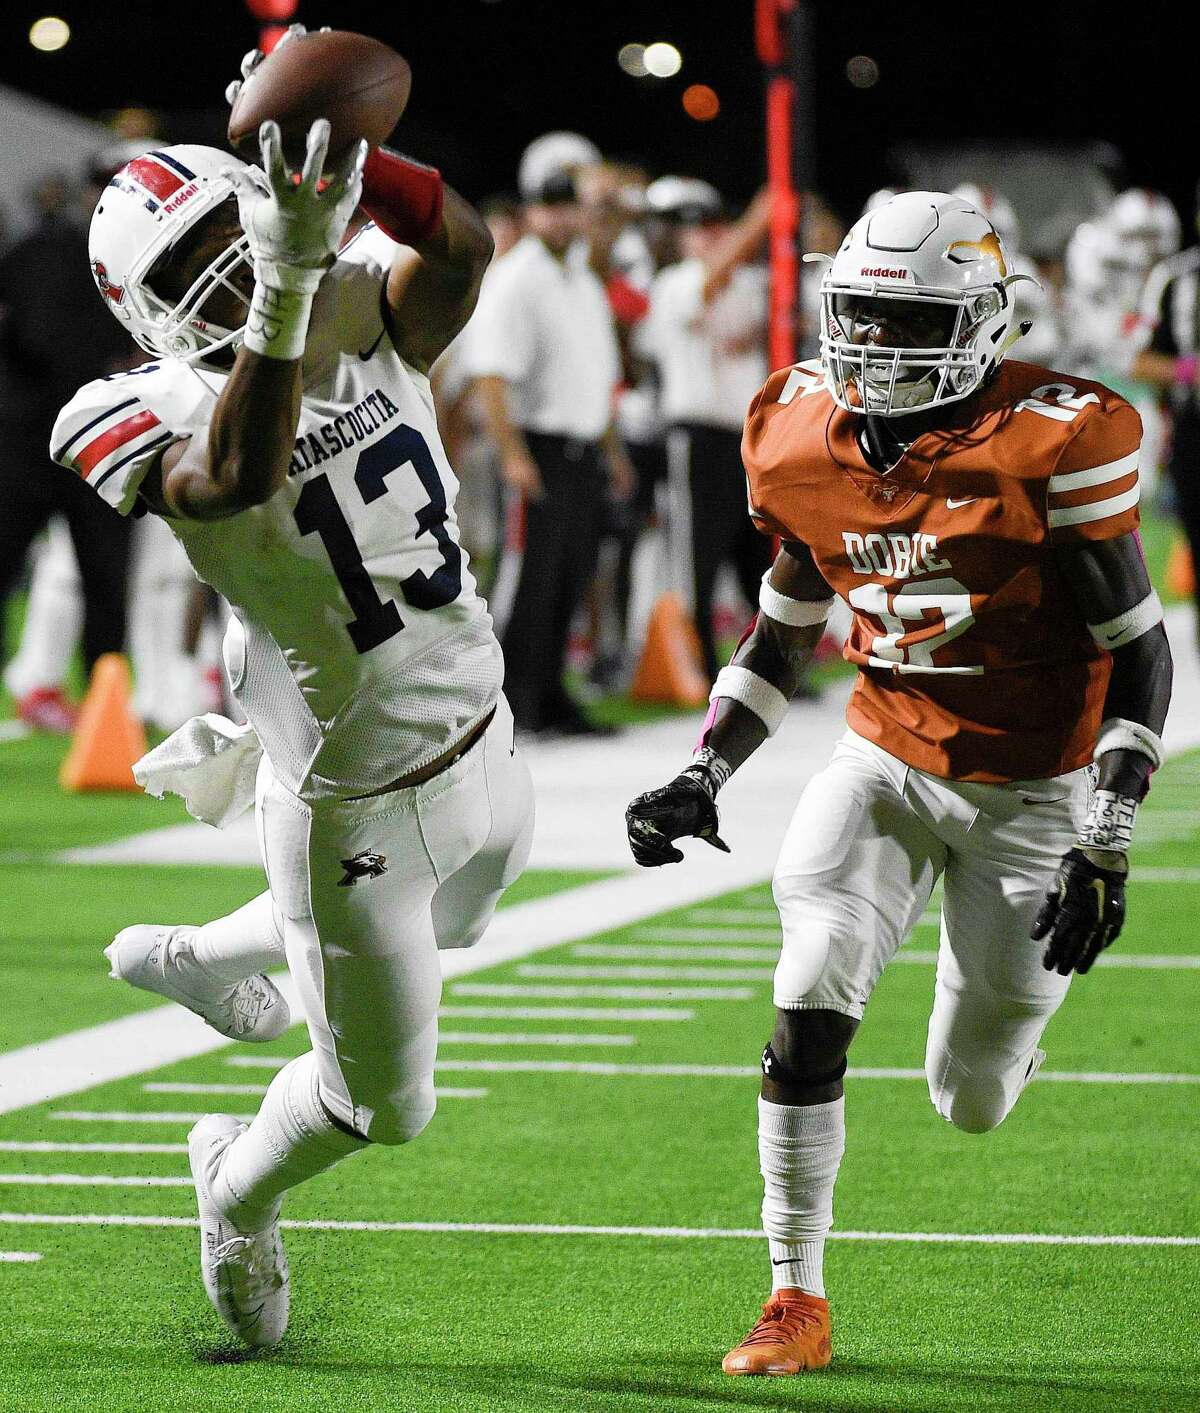 Atascocita wide receiver Landen King (13) catches a pass over Dobie defensive back Darrius Pamplin during the first half of a high school football game, Friday, Oct. 18, 2019, in Pasadena, TX.